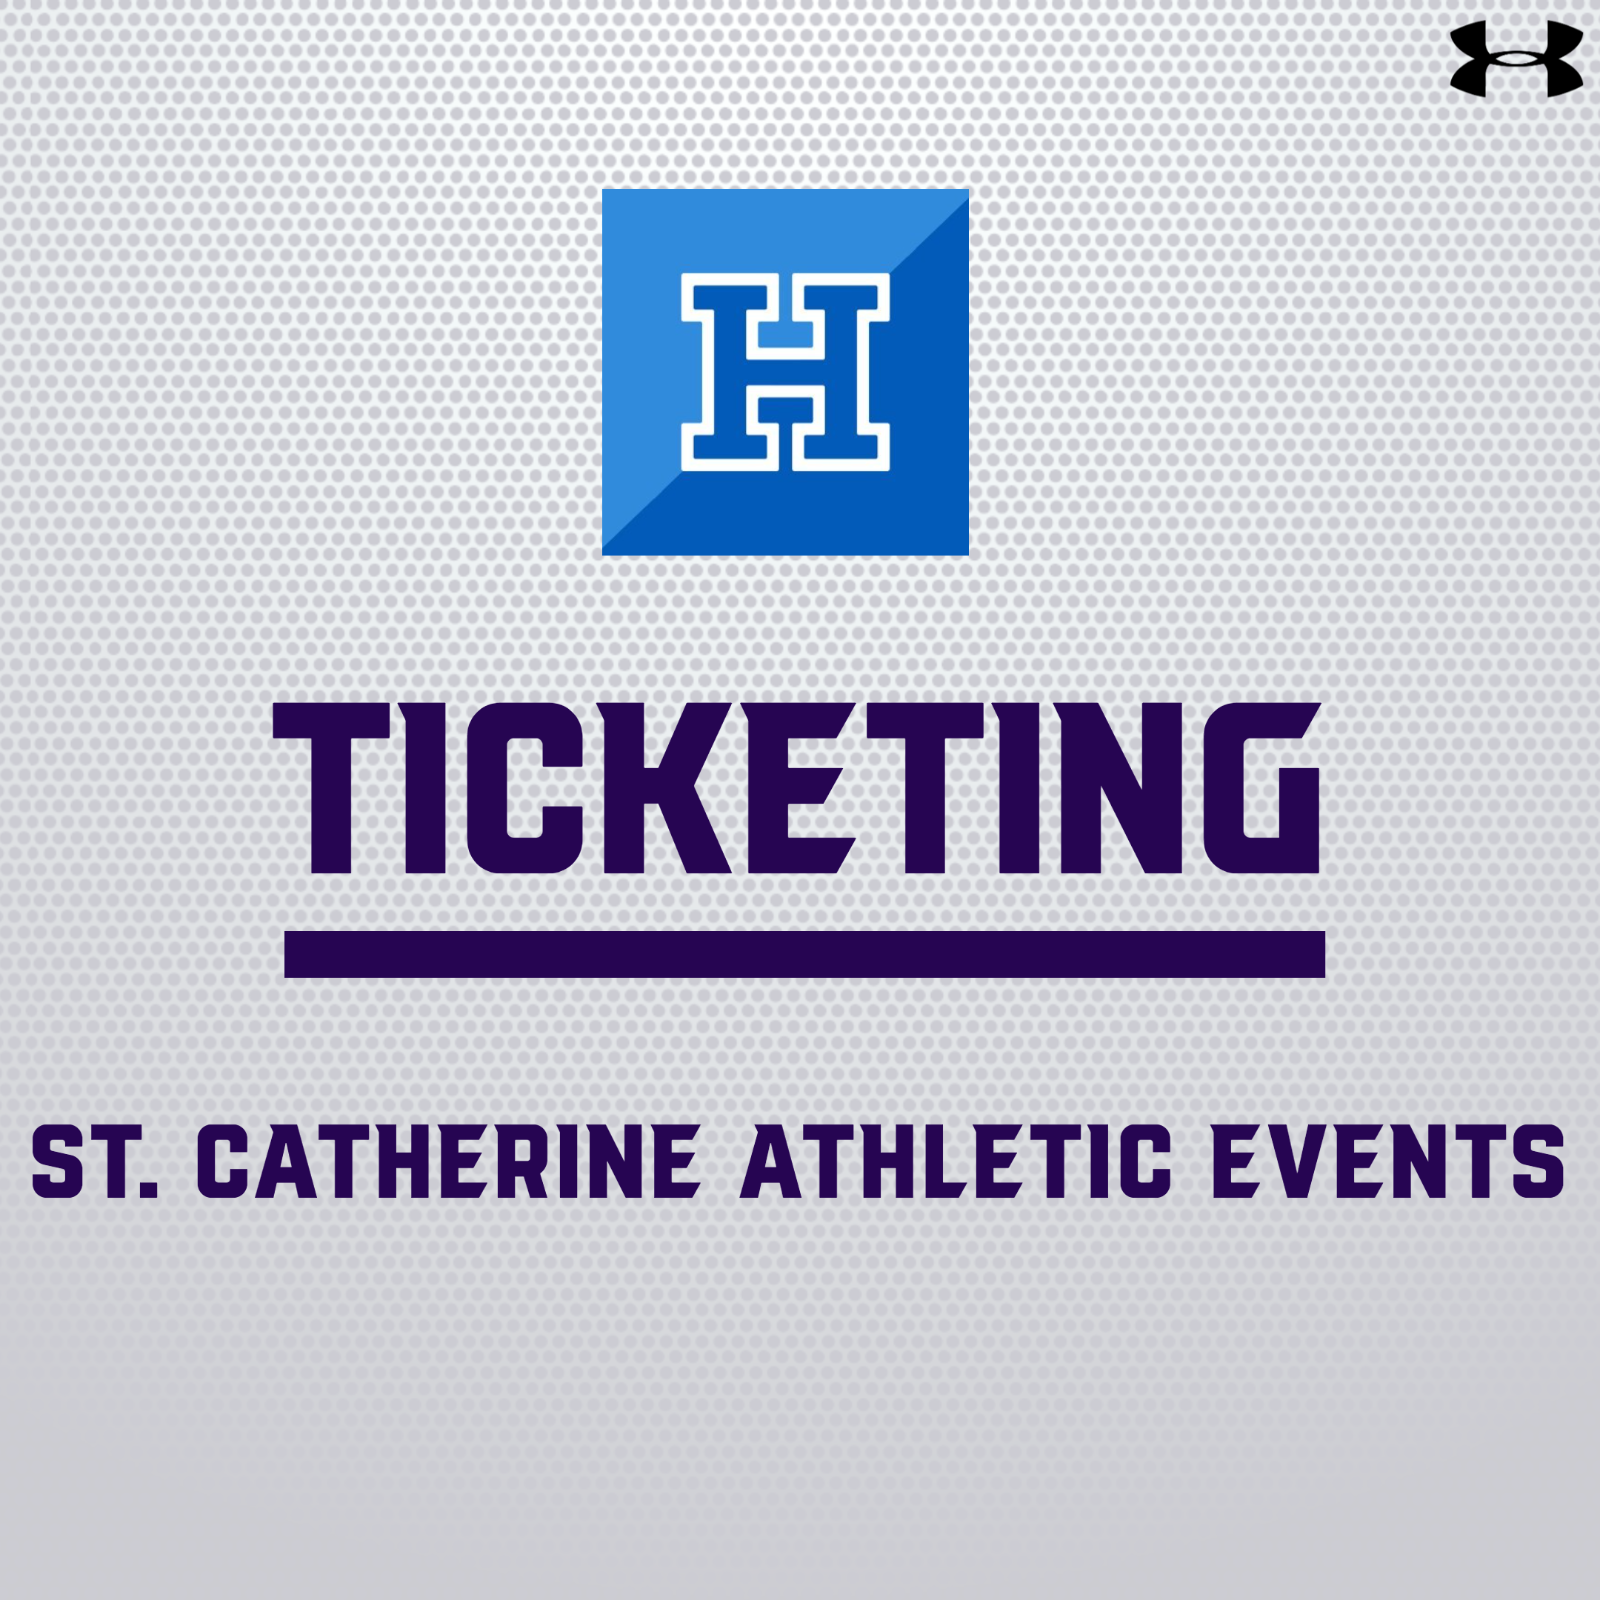 St. Catherine Athletics & Hometown Ticketing